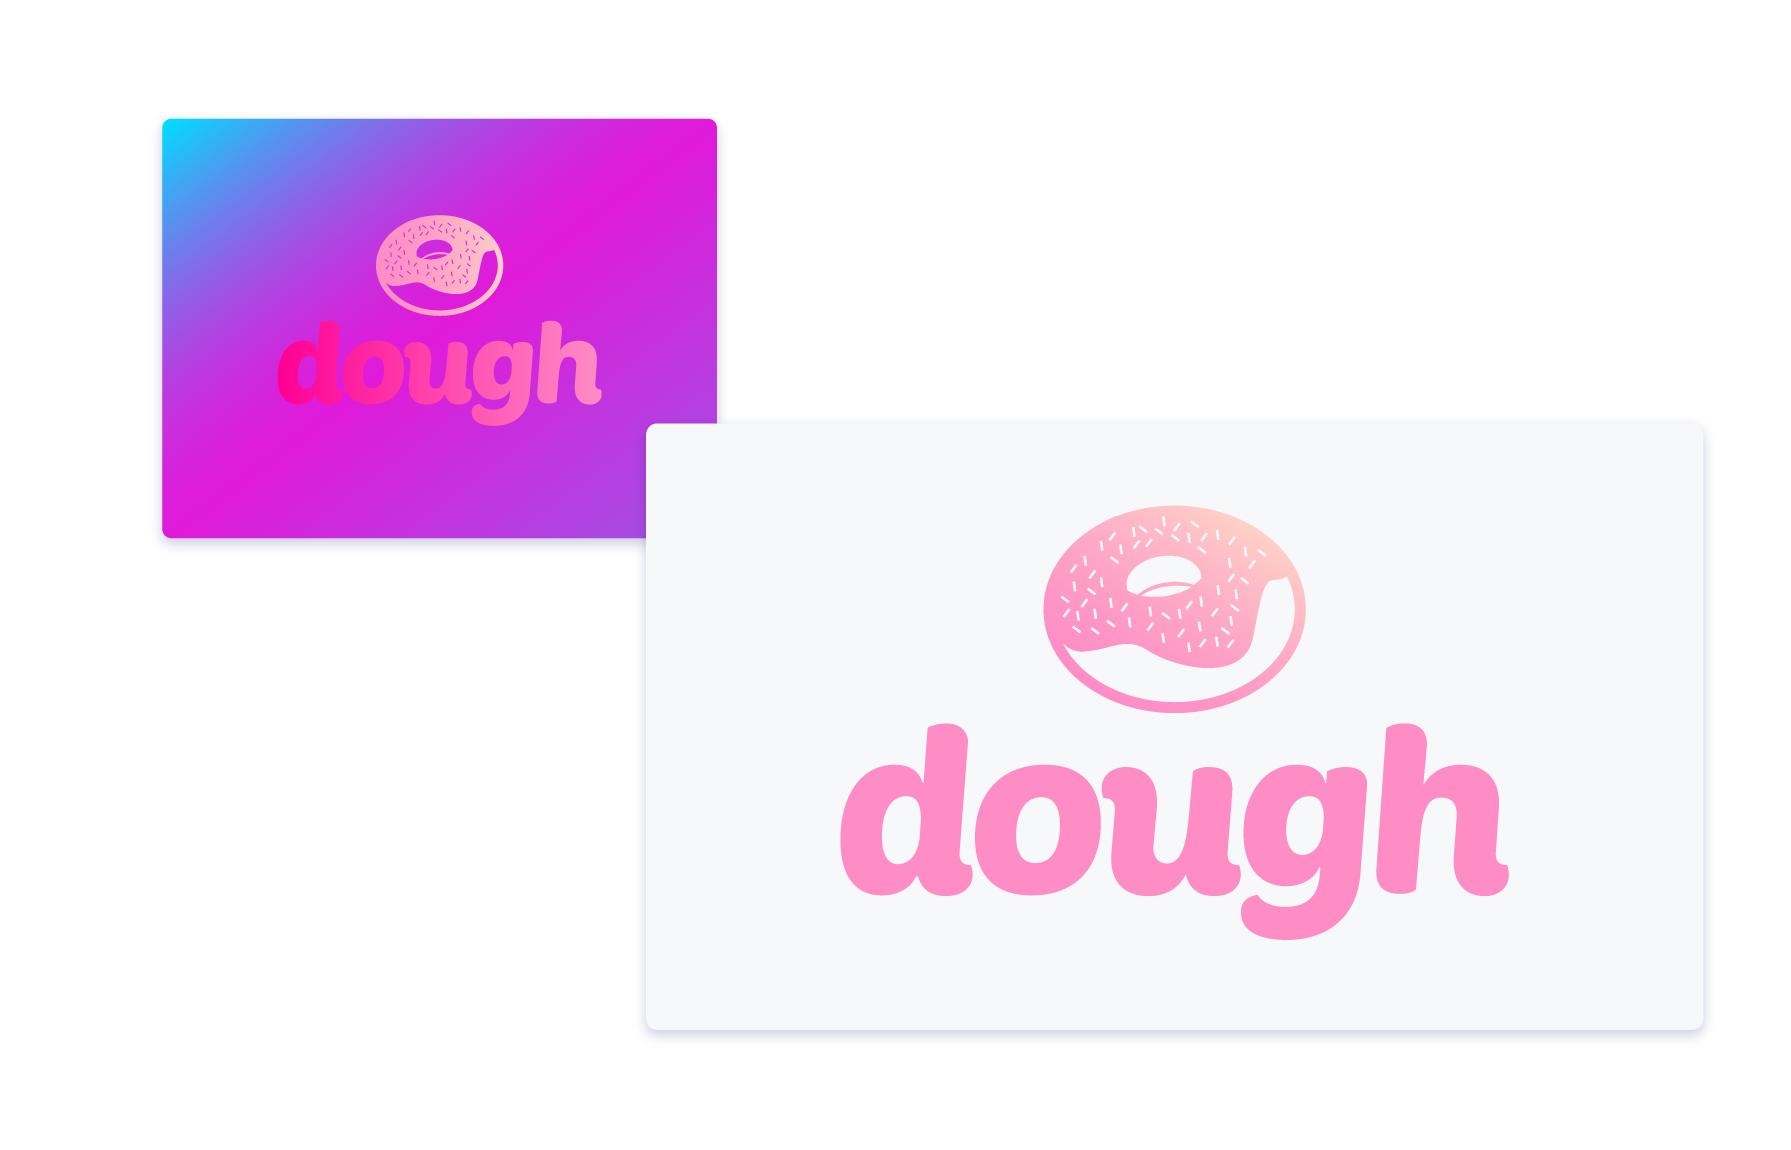 Pink gradient design for a company called dough